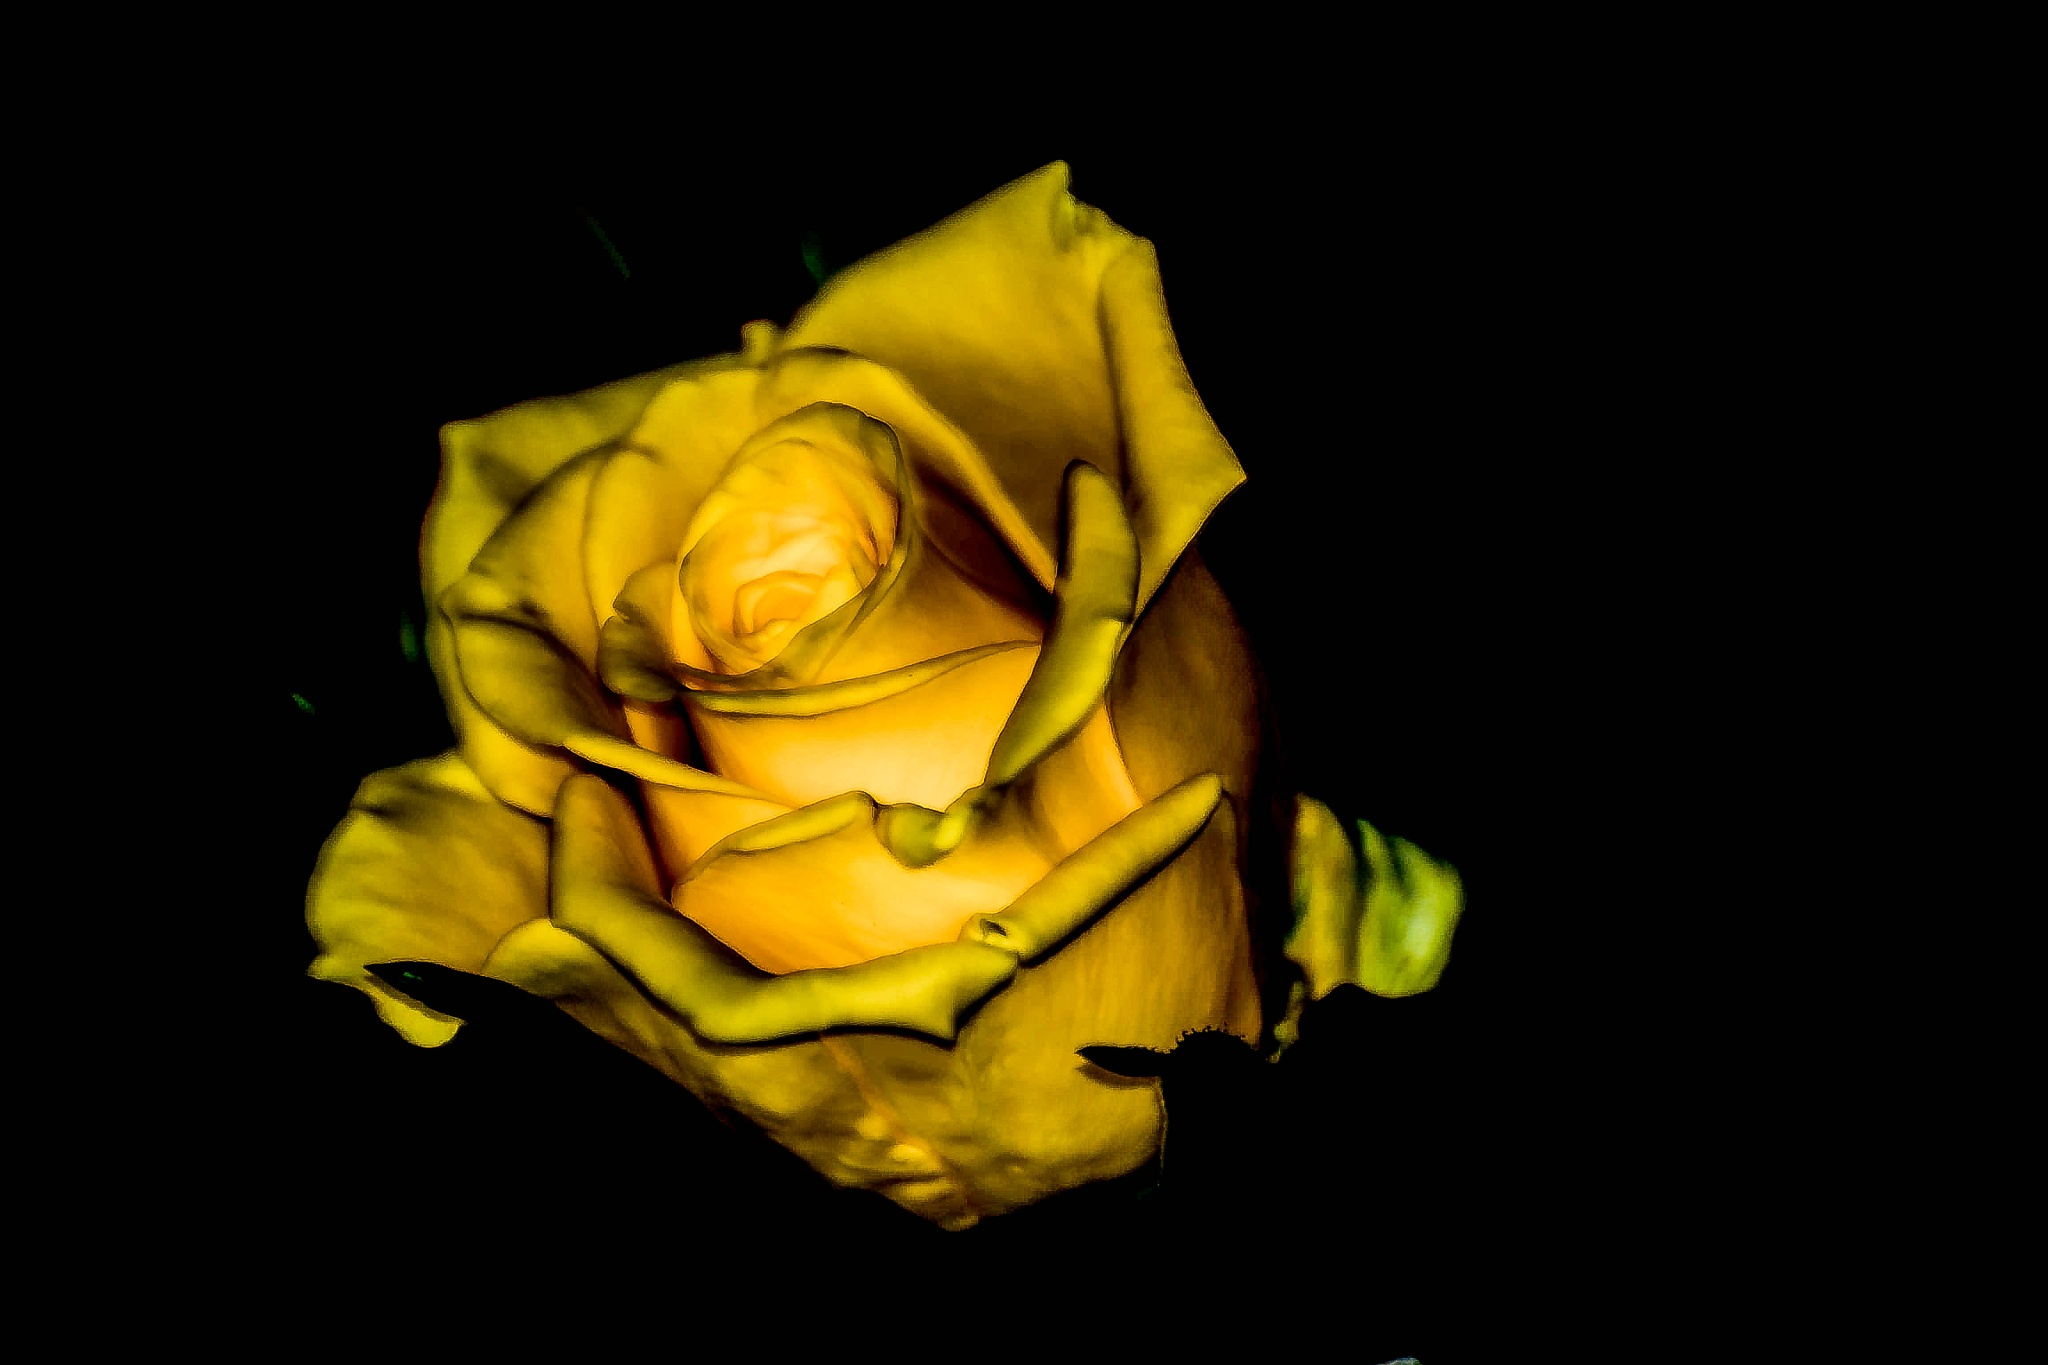 Yellow Rose by ilseBodewes